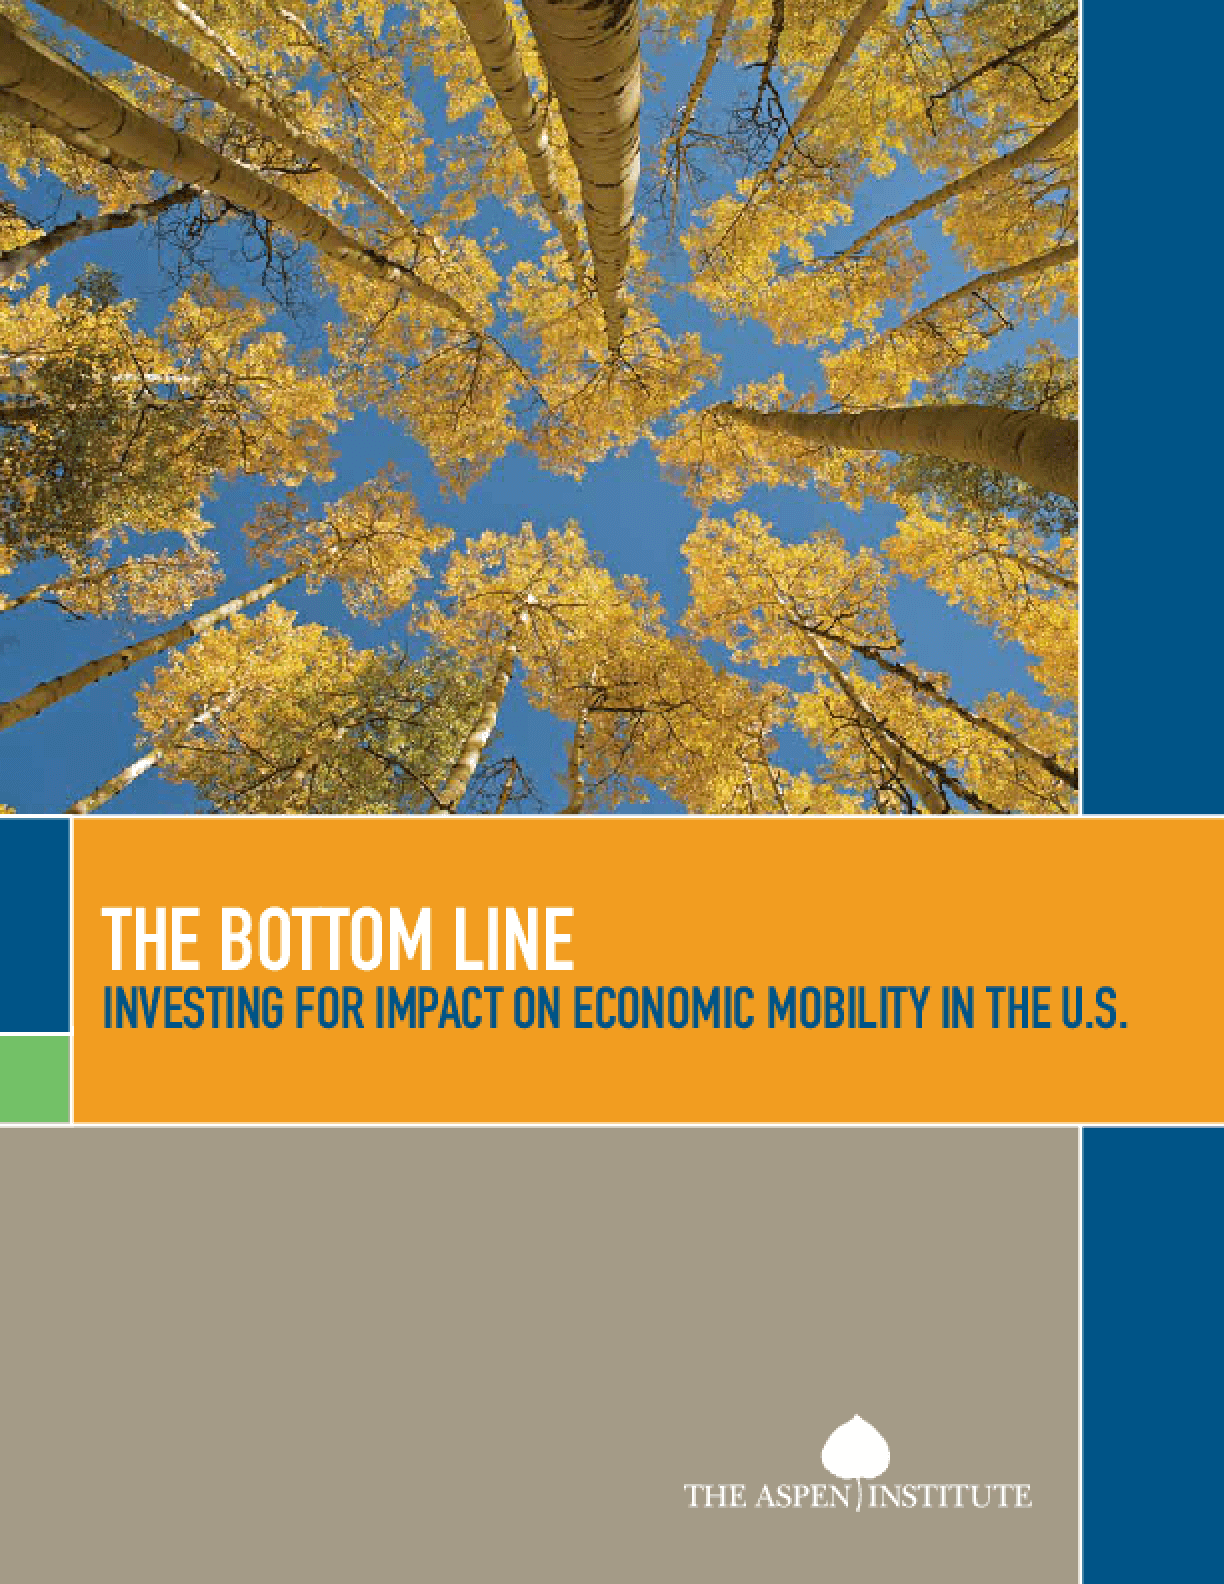 The Bottom Line: Investing for Impact on Economic Mobility in the U.S.